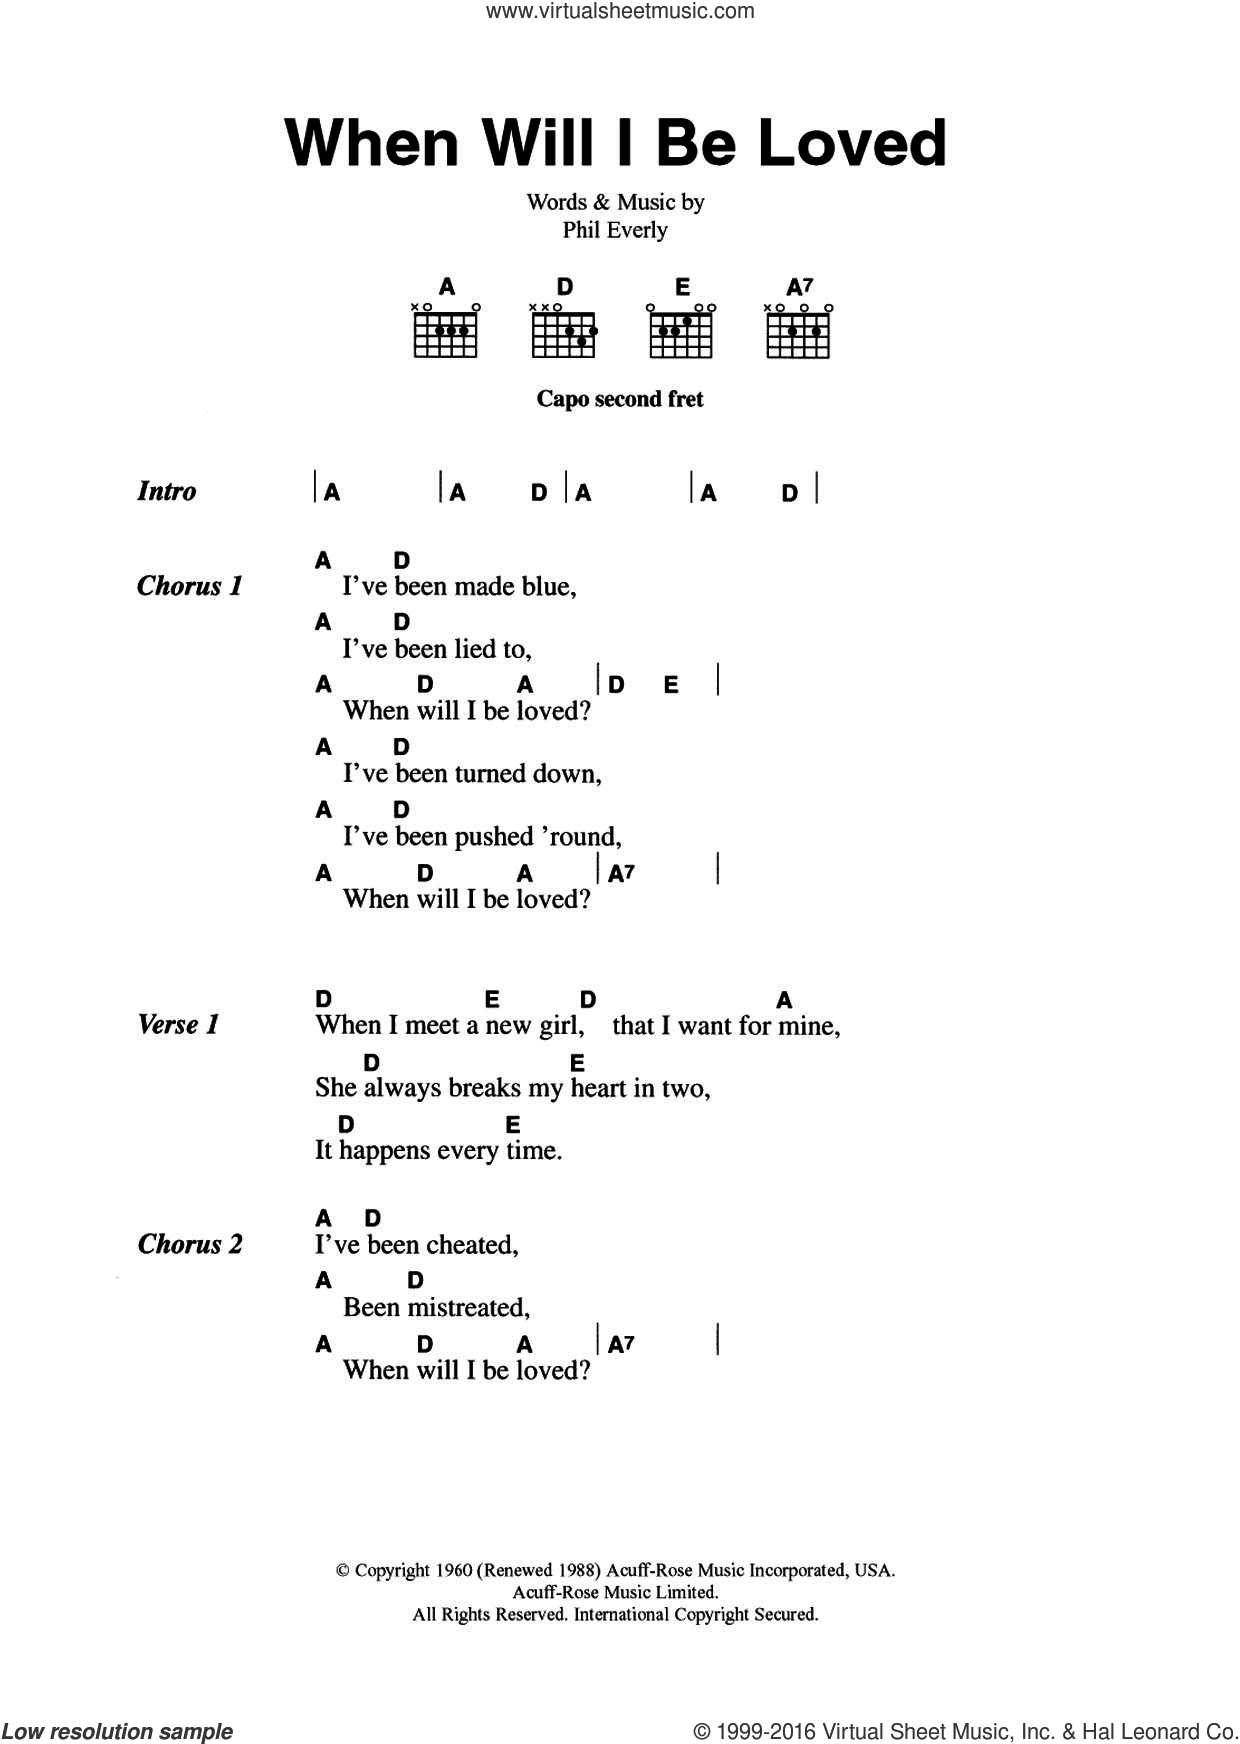 When Will I Be Loved? sheet music for guitar (chords) by The Everly Brothers and Phil Everly, intermediate